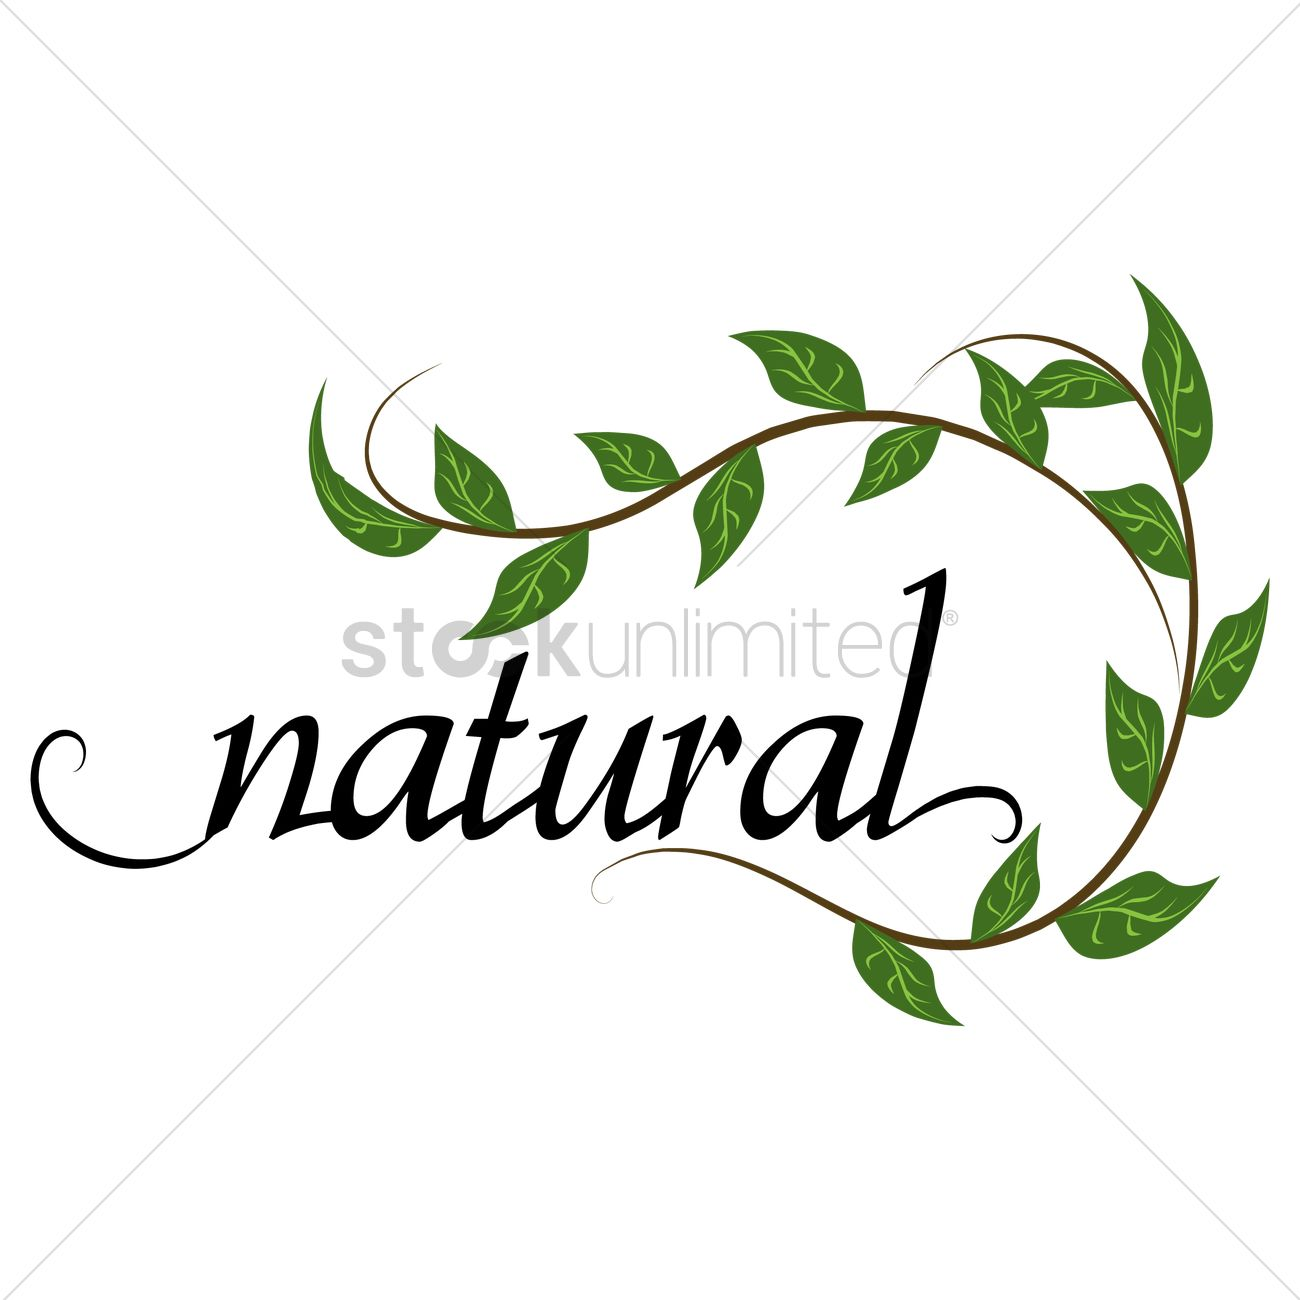 Go green concept with natural word Vector Image.